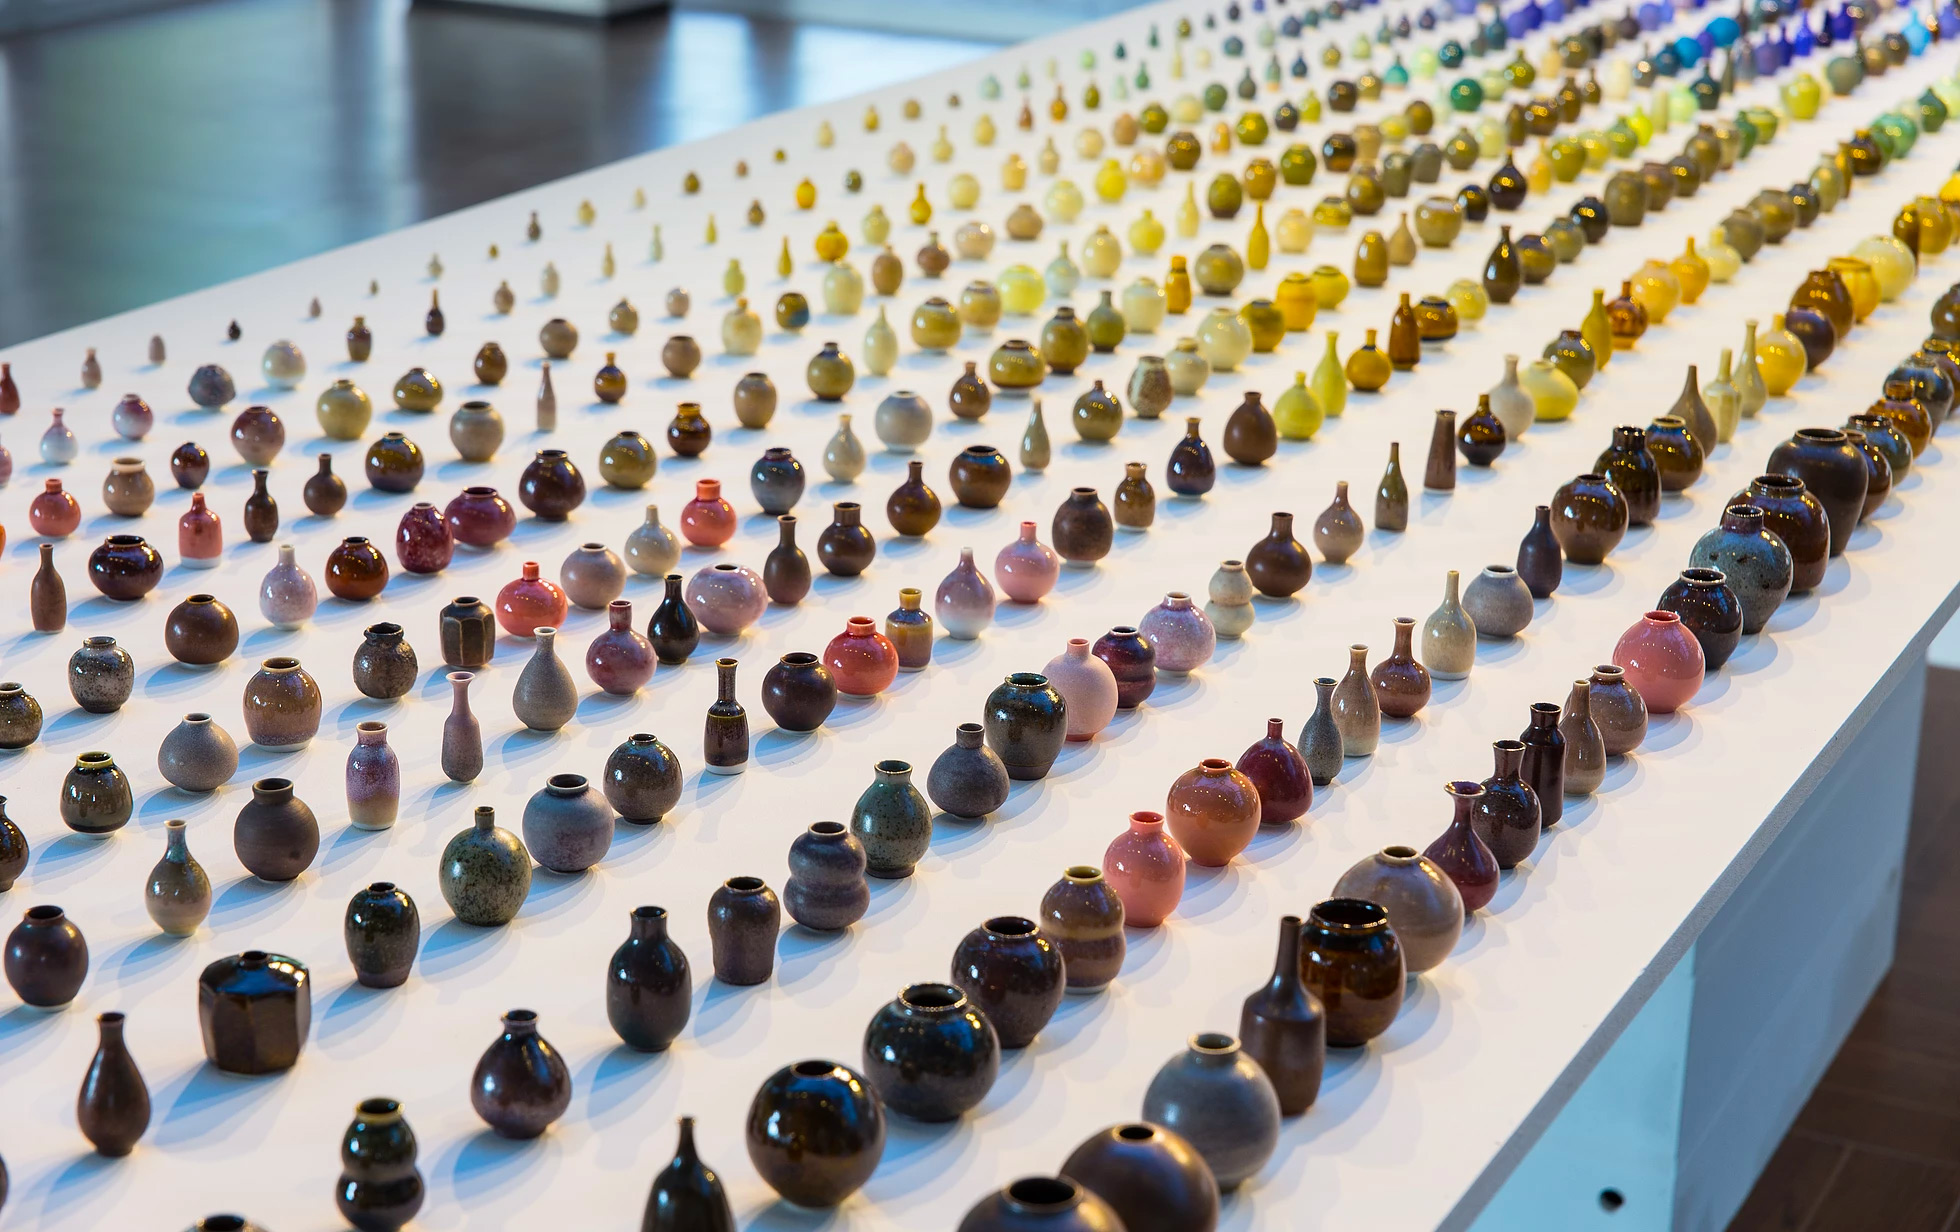 Thousands of Miniature Vases in a Rainbow of Glazes by Ceramic Artist Yuta Segawa